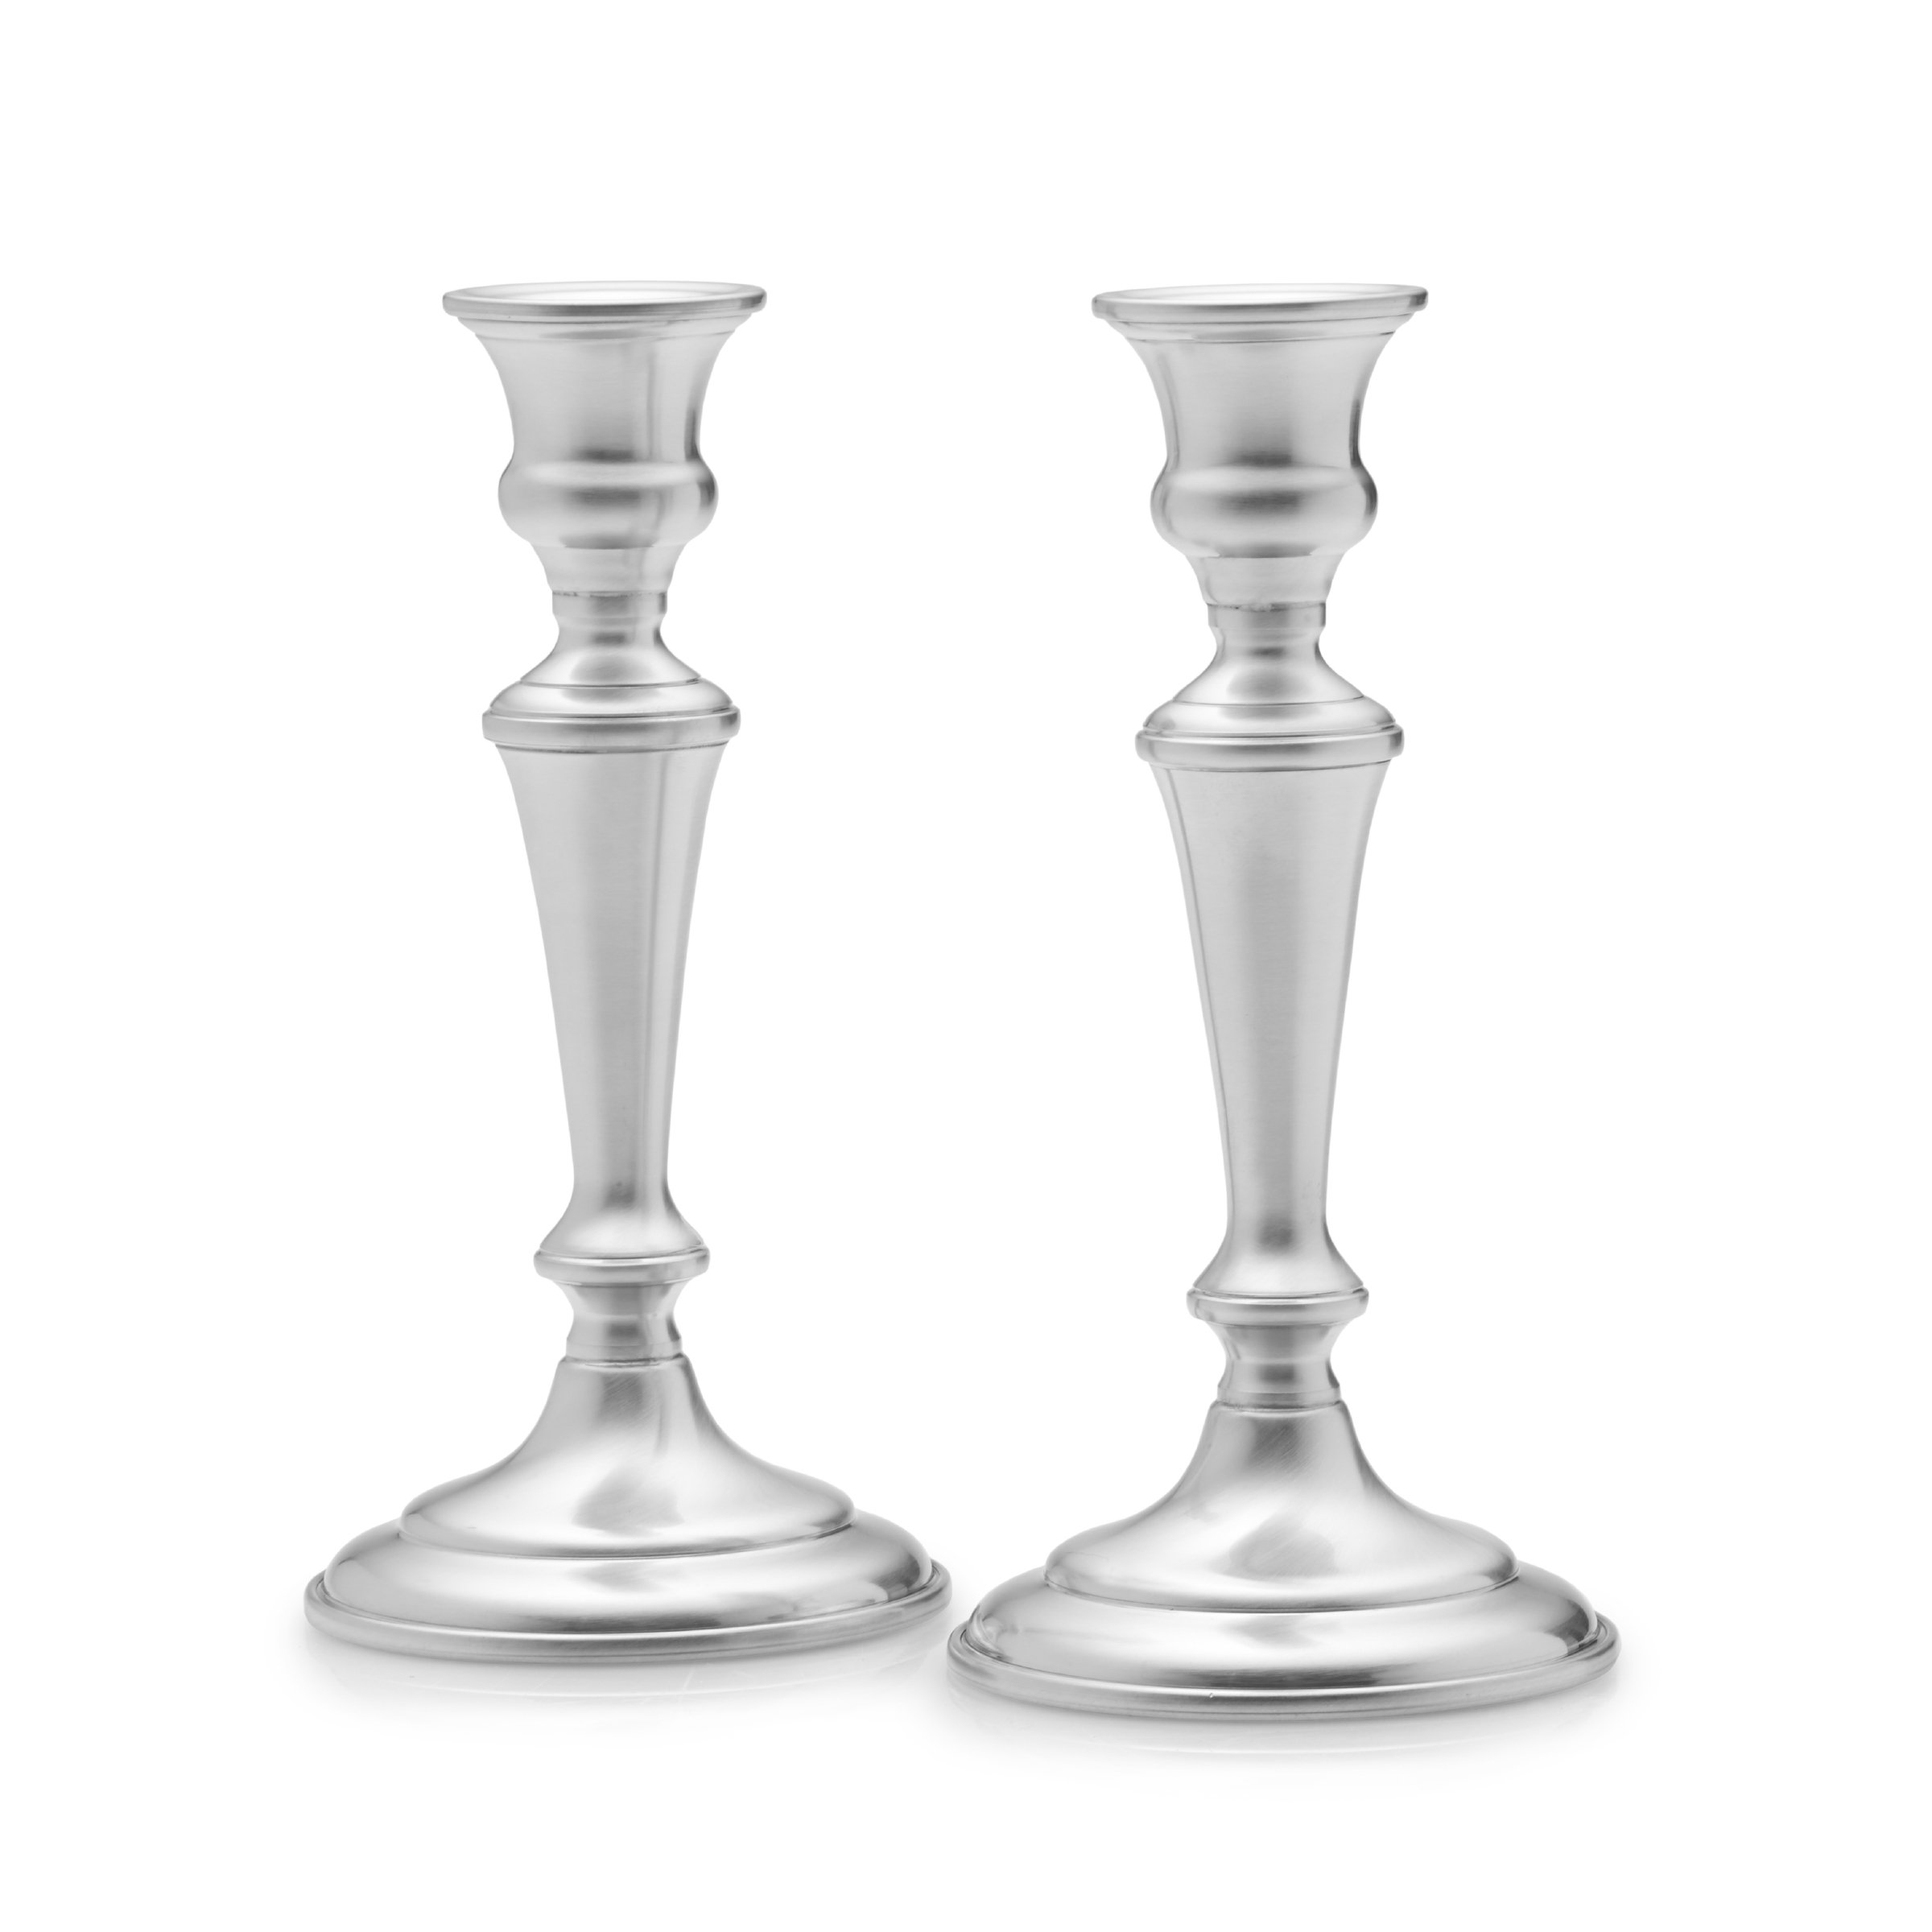 Empire Pewter Candlestick Holder, 8-Inch, Set of 2